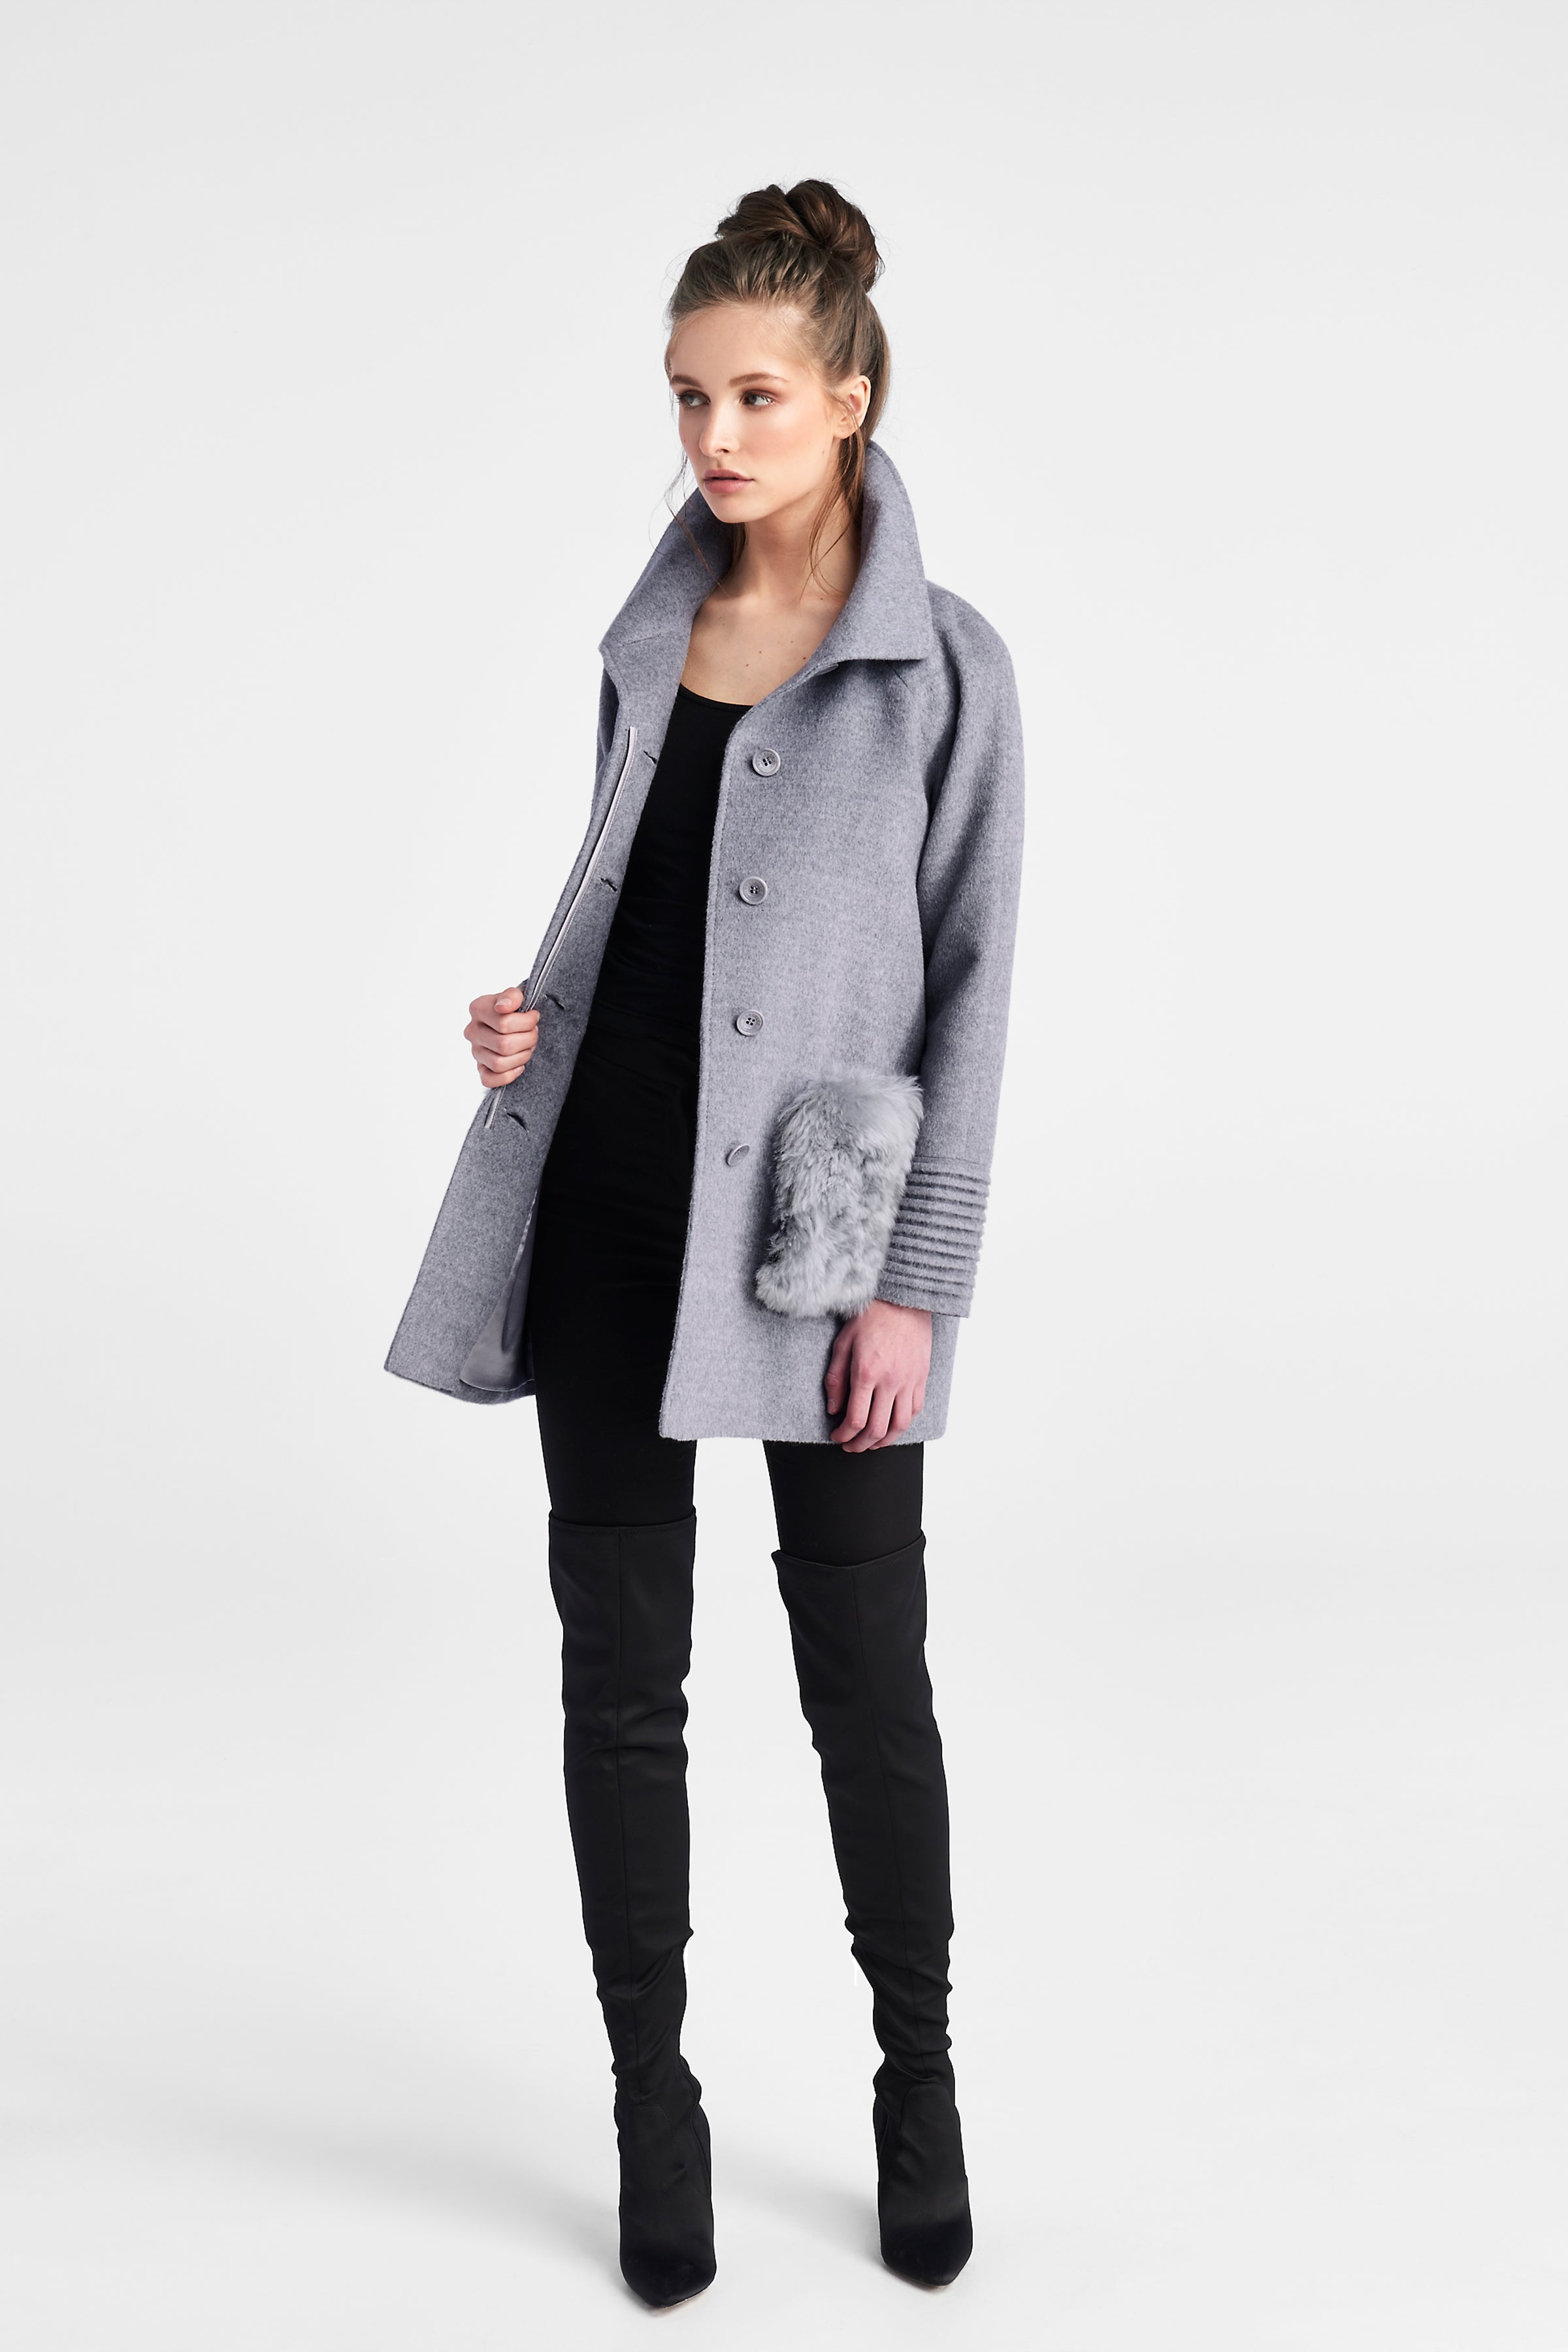 Raglan Sleeve with Fur Pockets Shale Grey